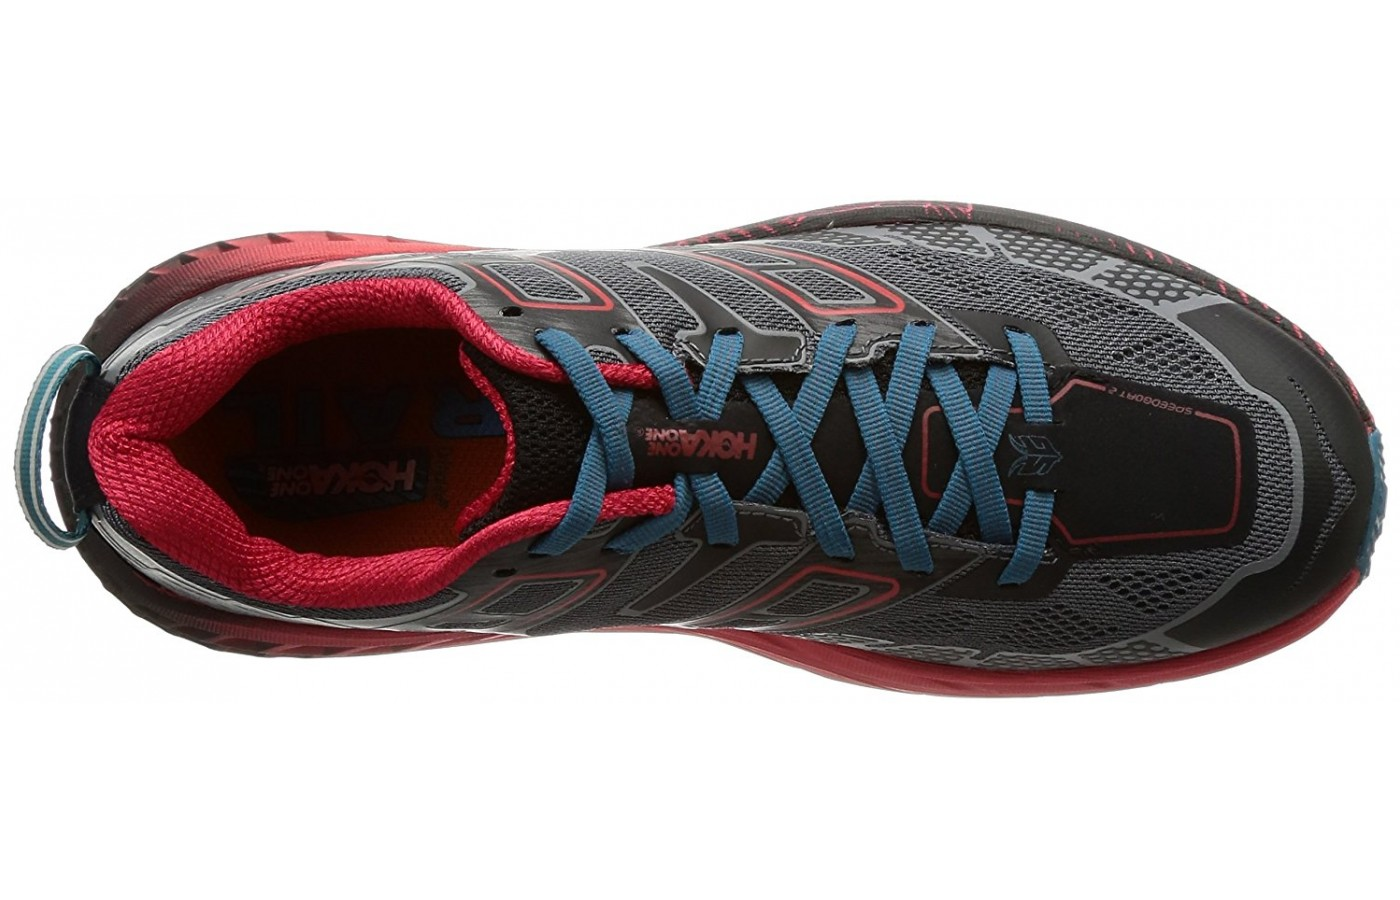 Hoka One One Speedgoat 2 upper